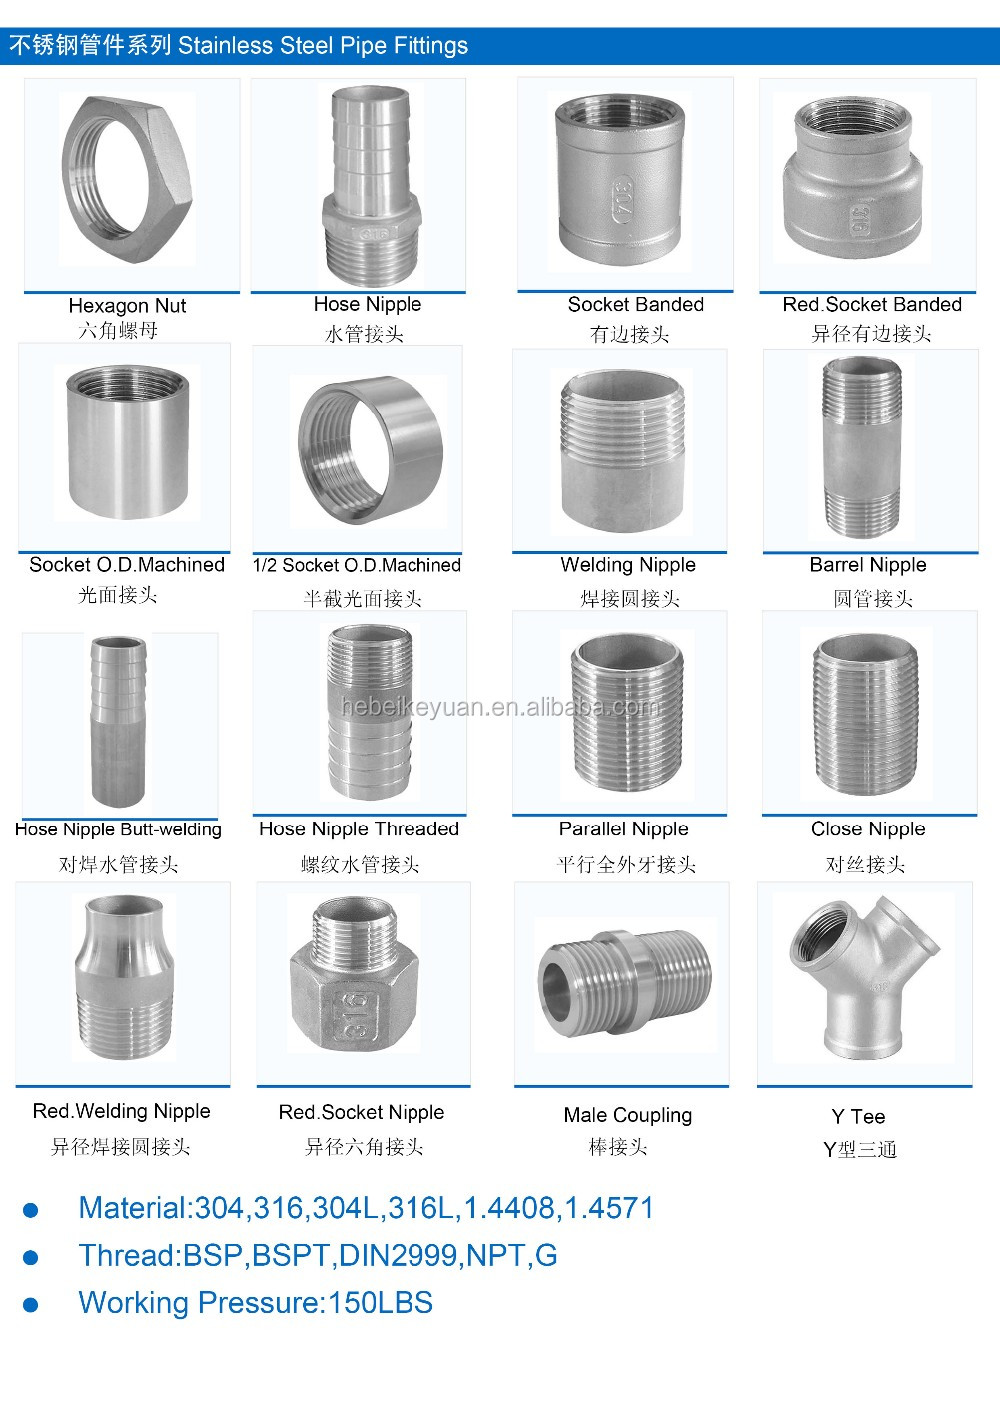 Direct Factory of Class 150 Stainless Steel Screwed Threaded Pipe Fittings